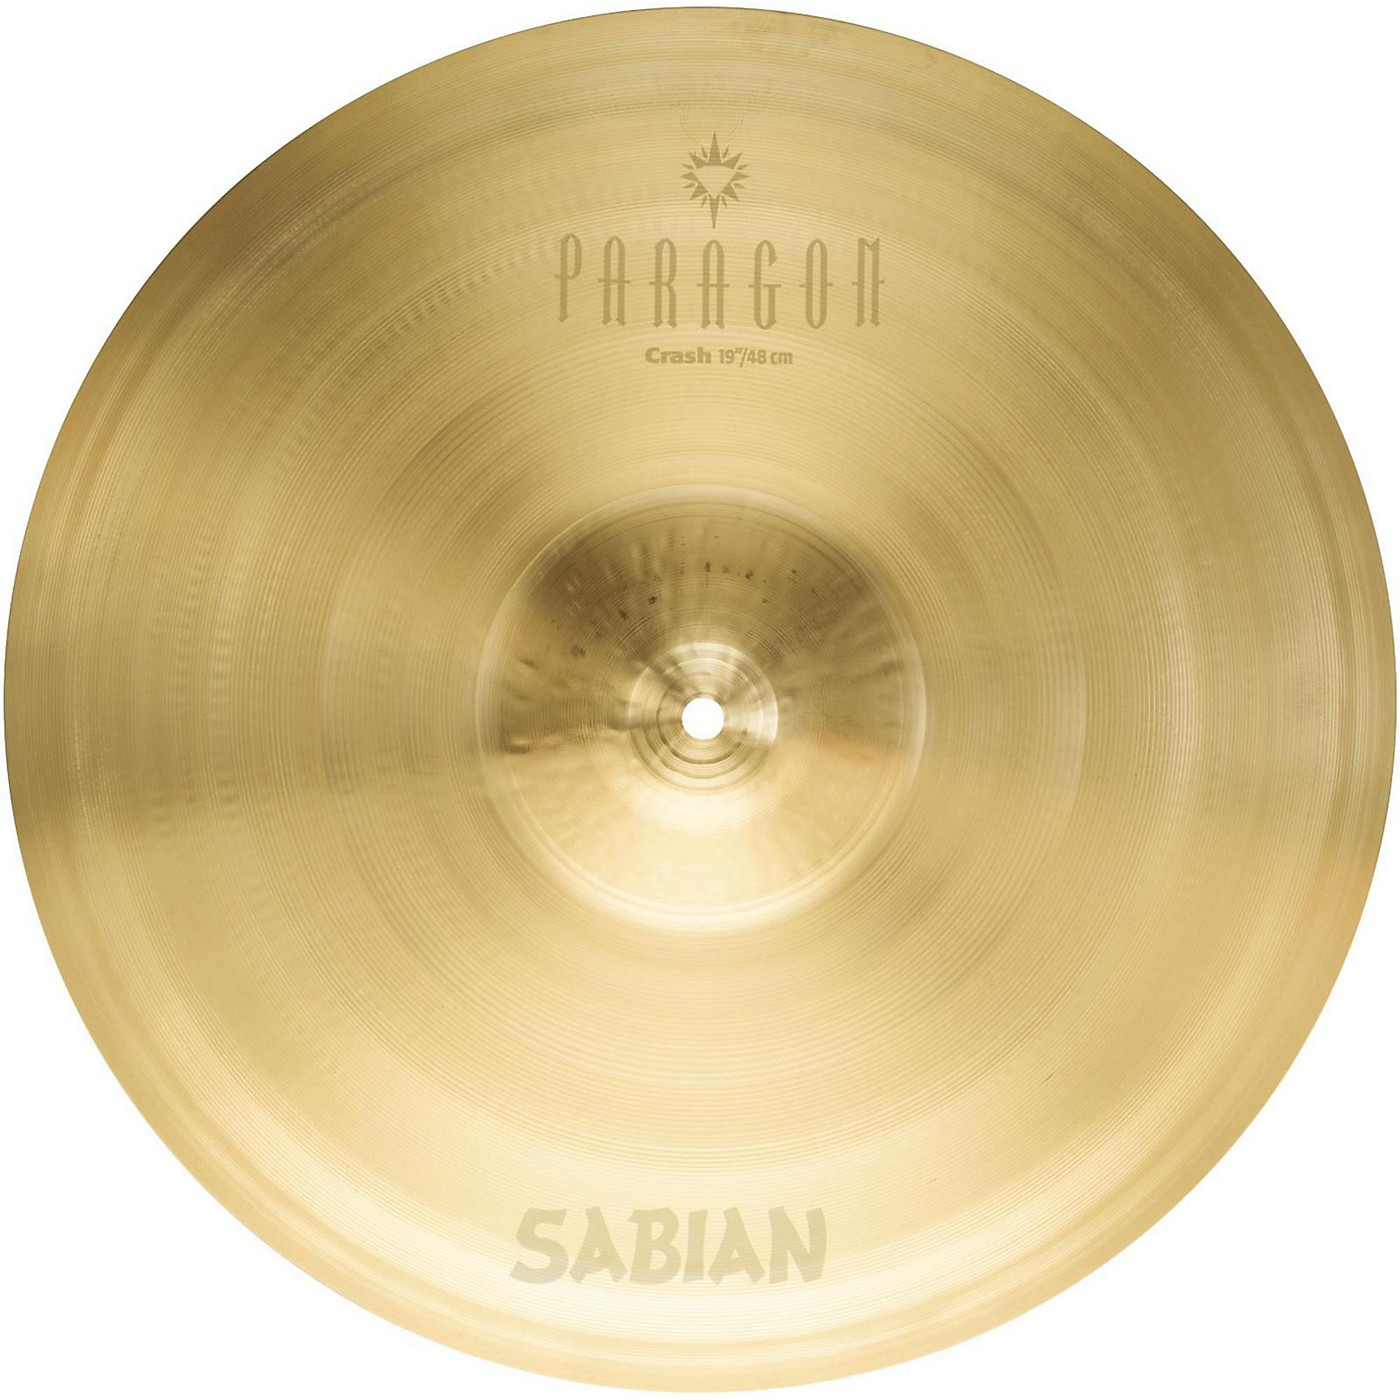 Sabian Neil Peart Paragon Crash Cymbal thumbnail